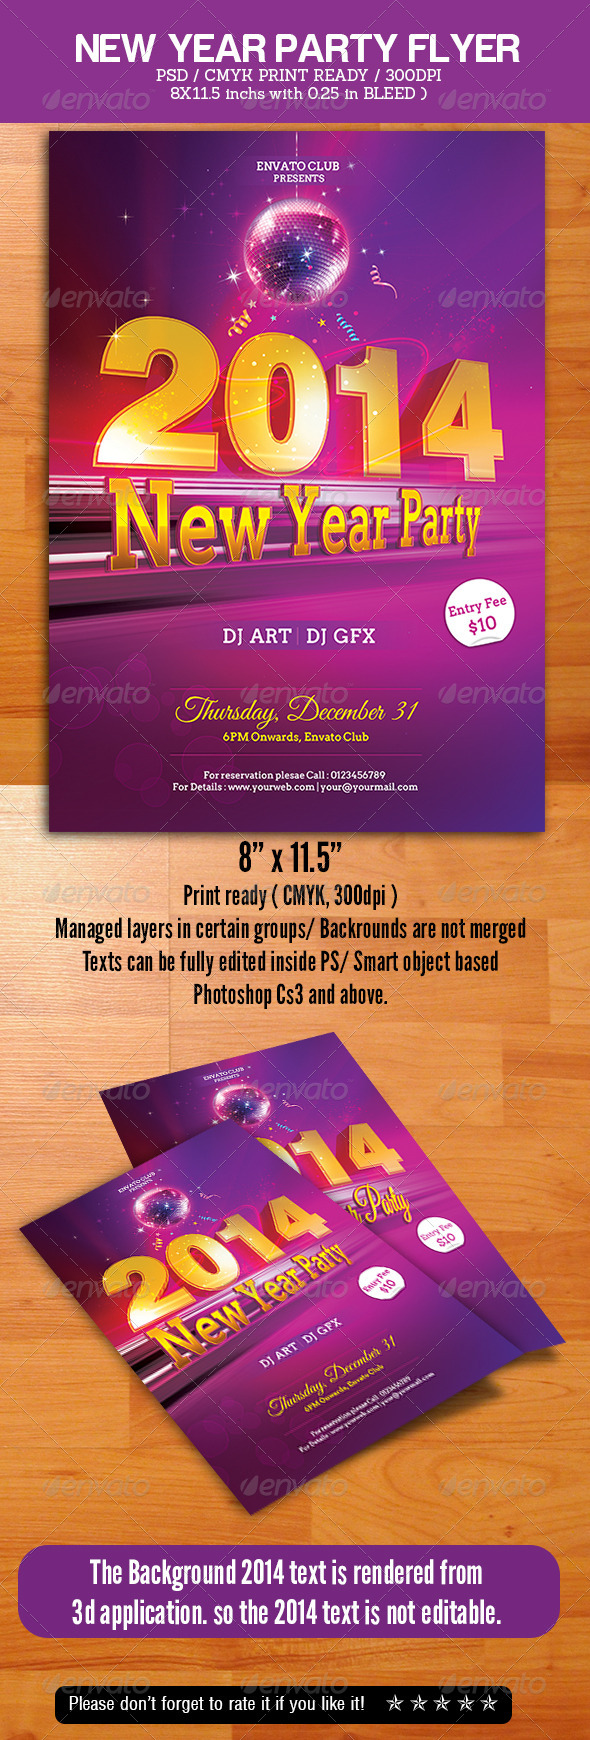 GraphicRiver New Year Party Flyer 6336537